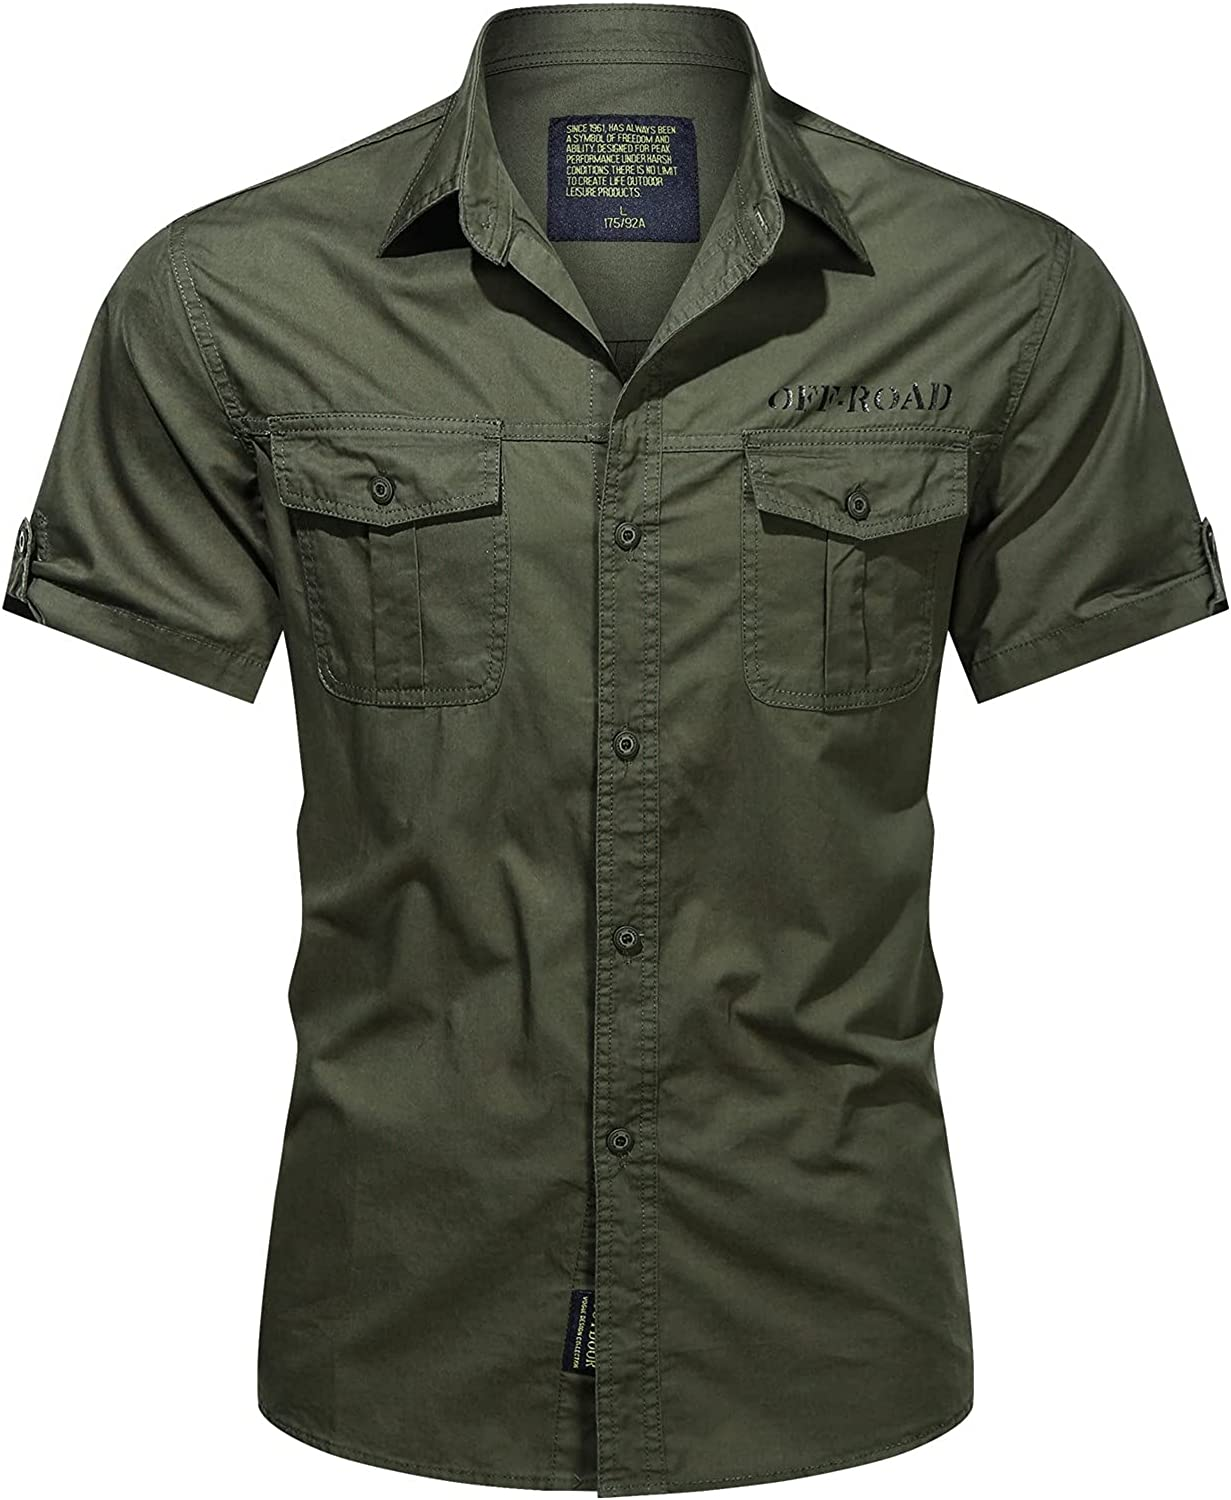 LIEIKIC Men's Military Style Button-Down Cargo Work Shirts Regular Fit Short Sleeve Breathable Workwear